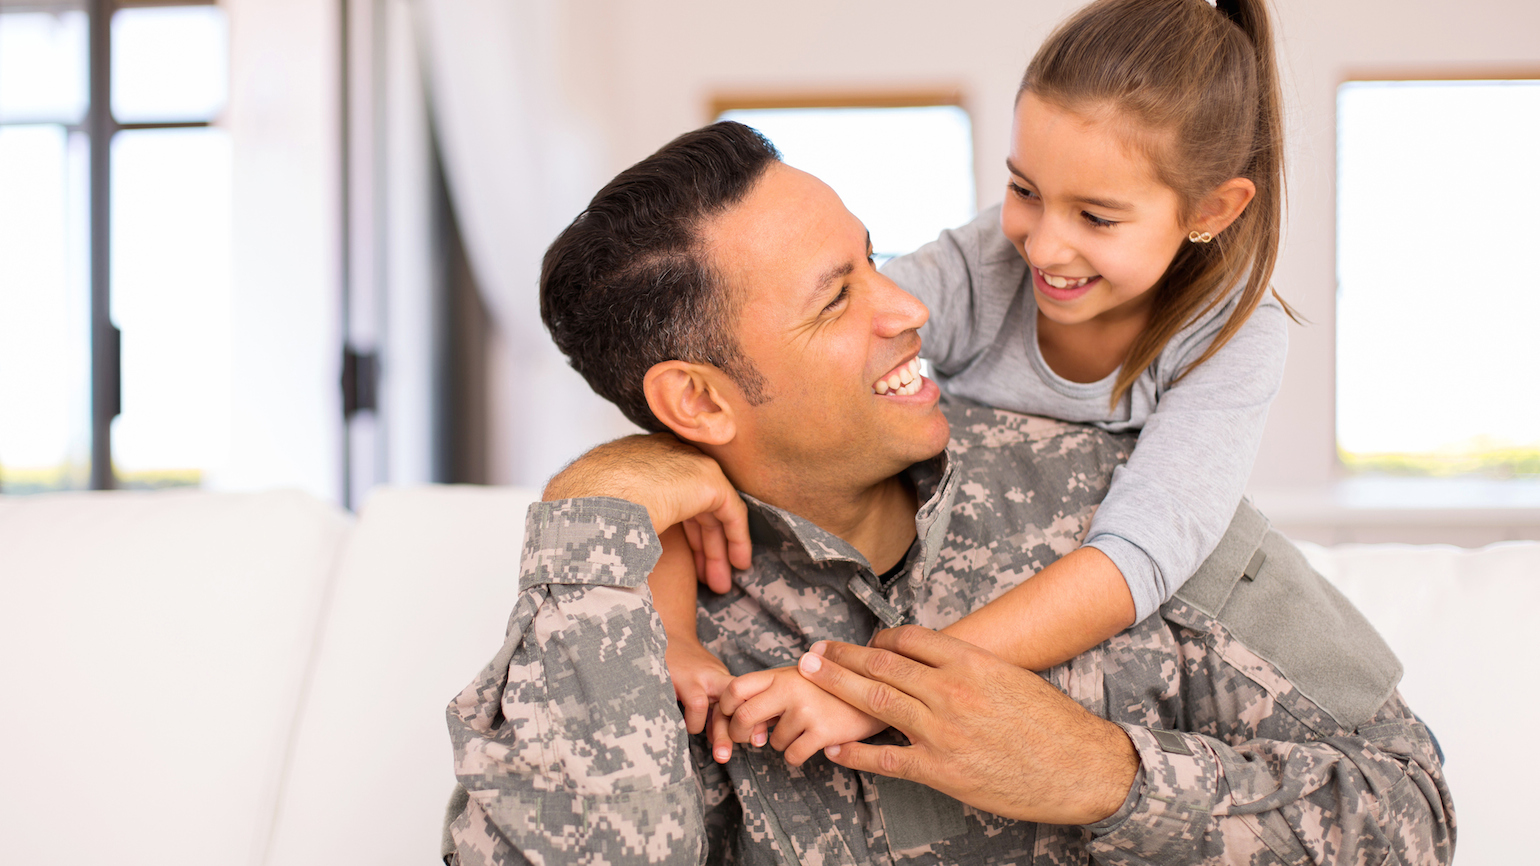 Hug A Military Family At Christmas Guideposts